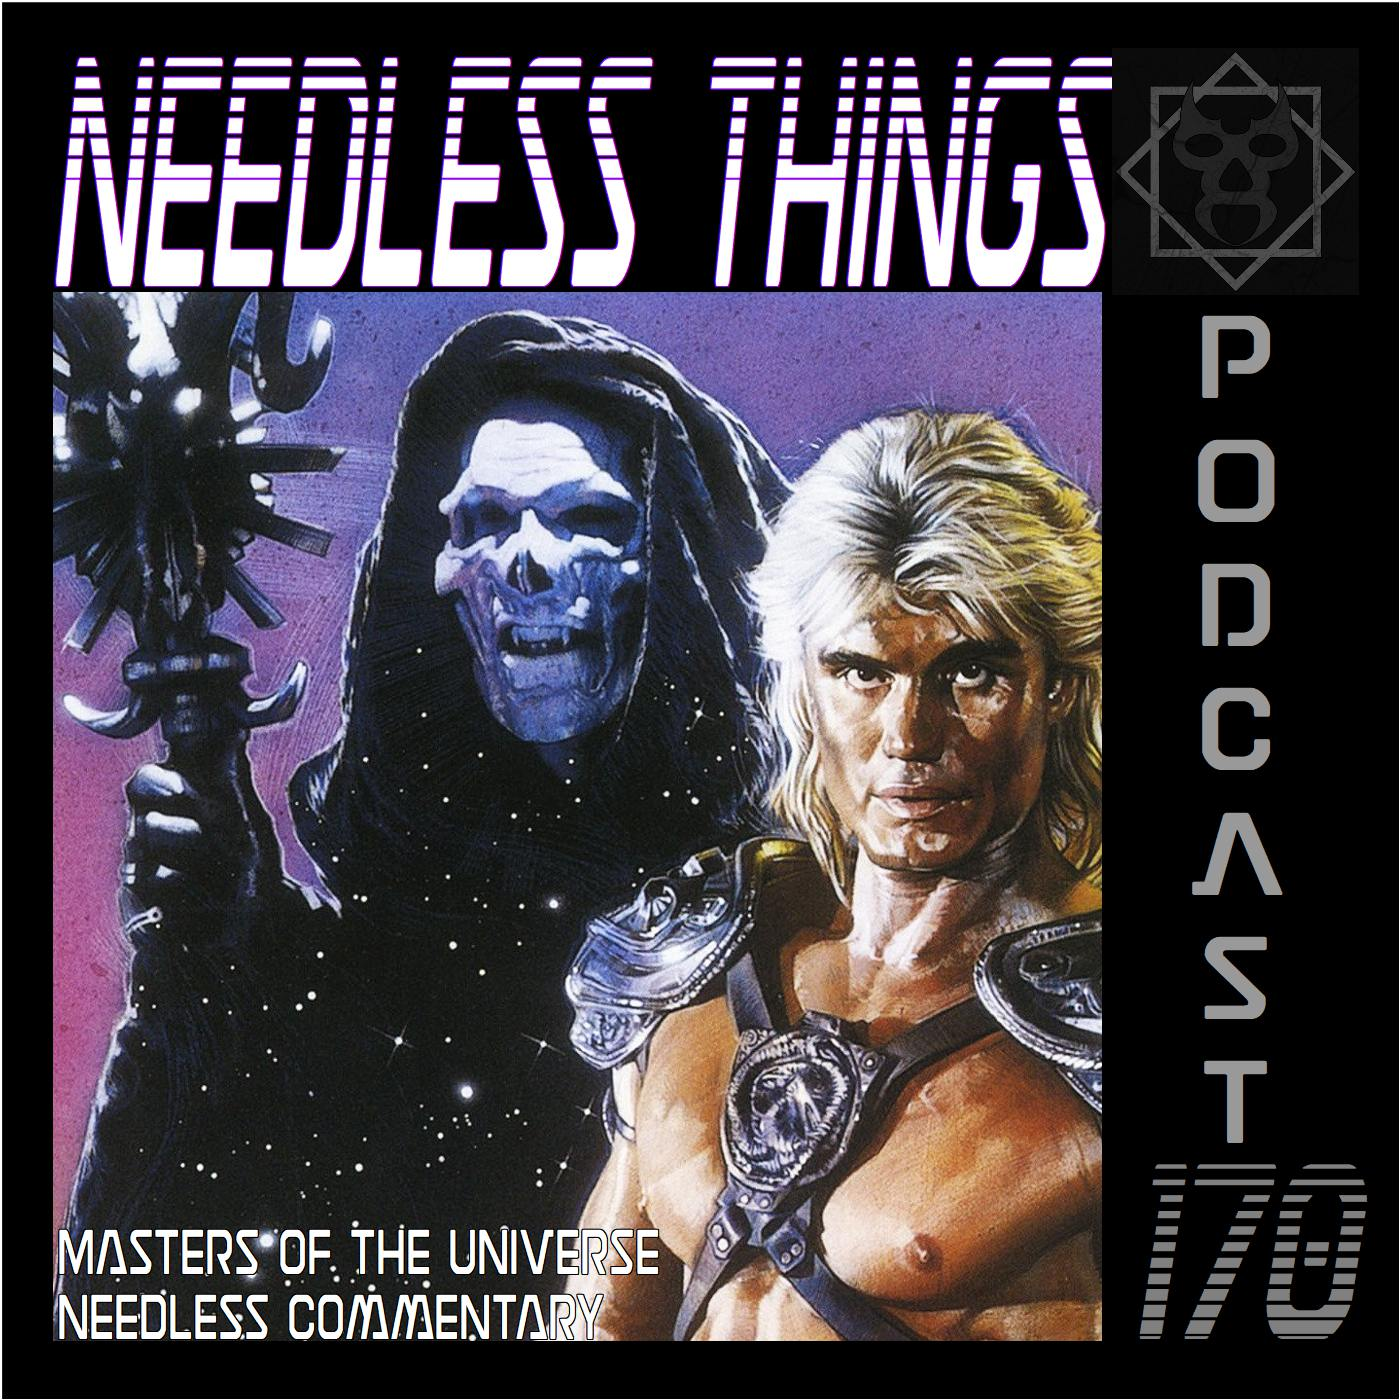 Needless Things Podcast 170 – Masters of the Universe Needless Commentary